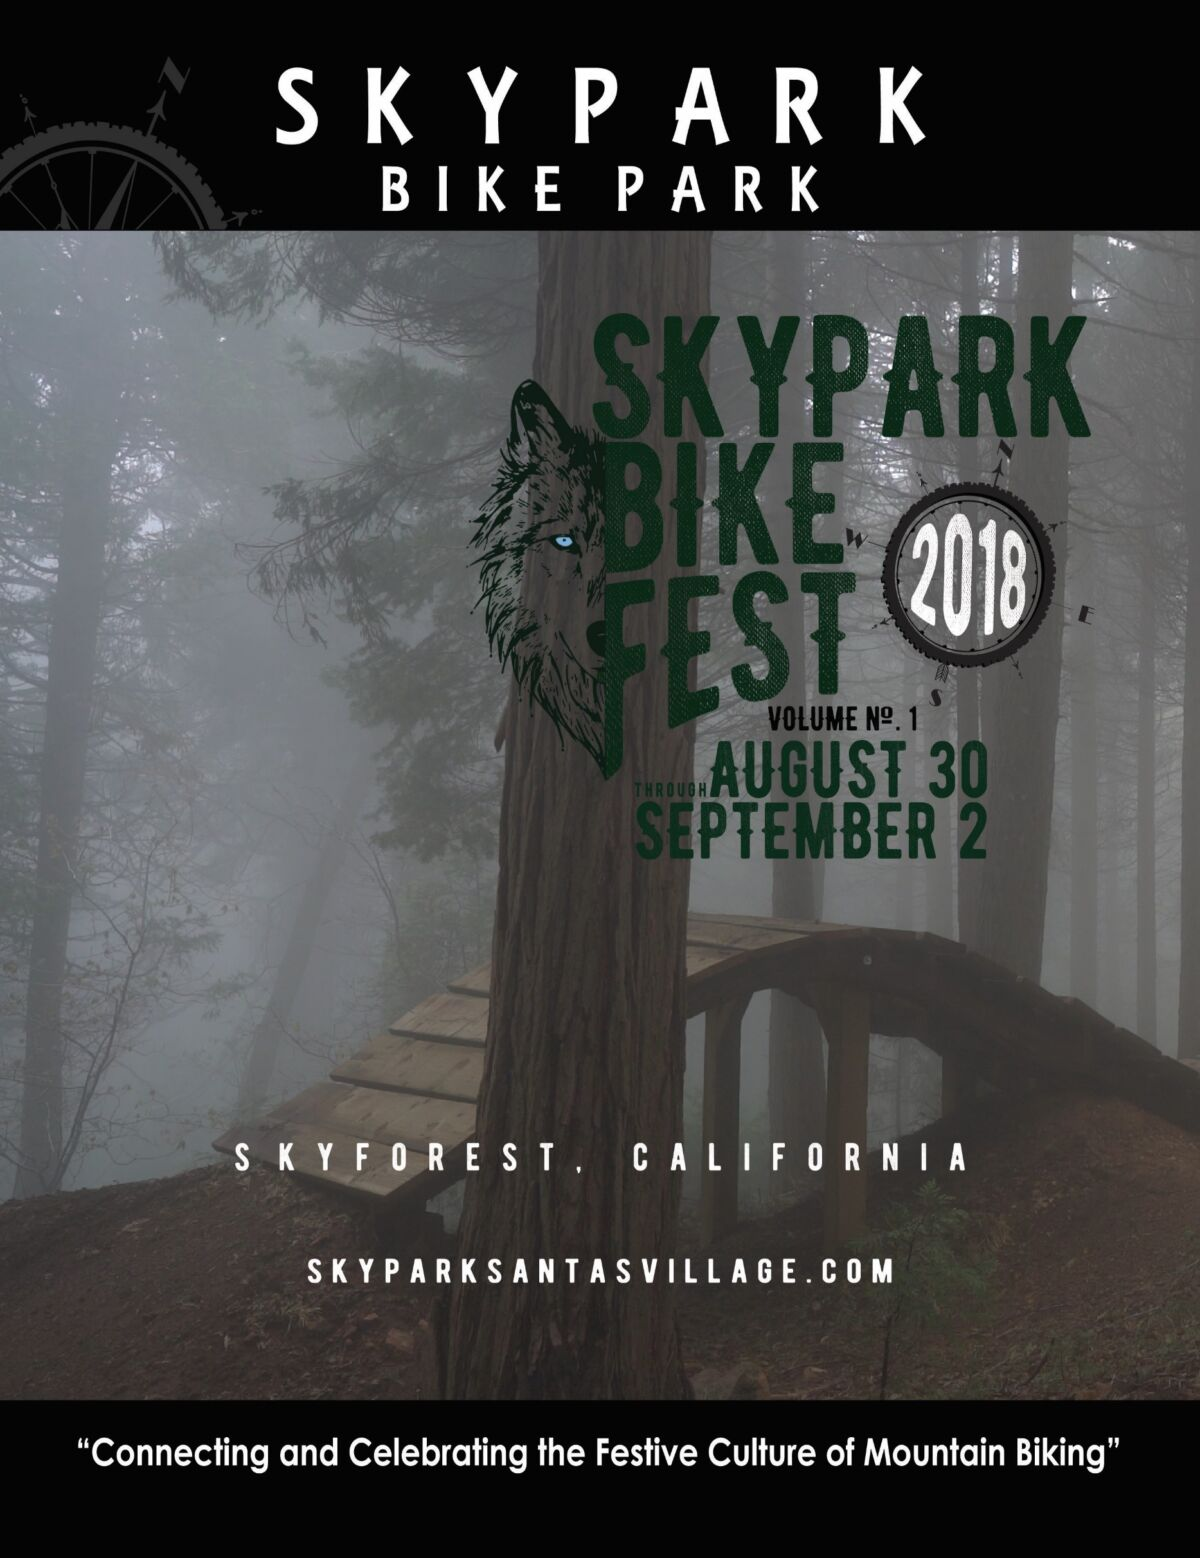 Southern California Bike Festival